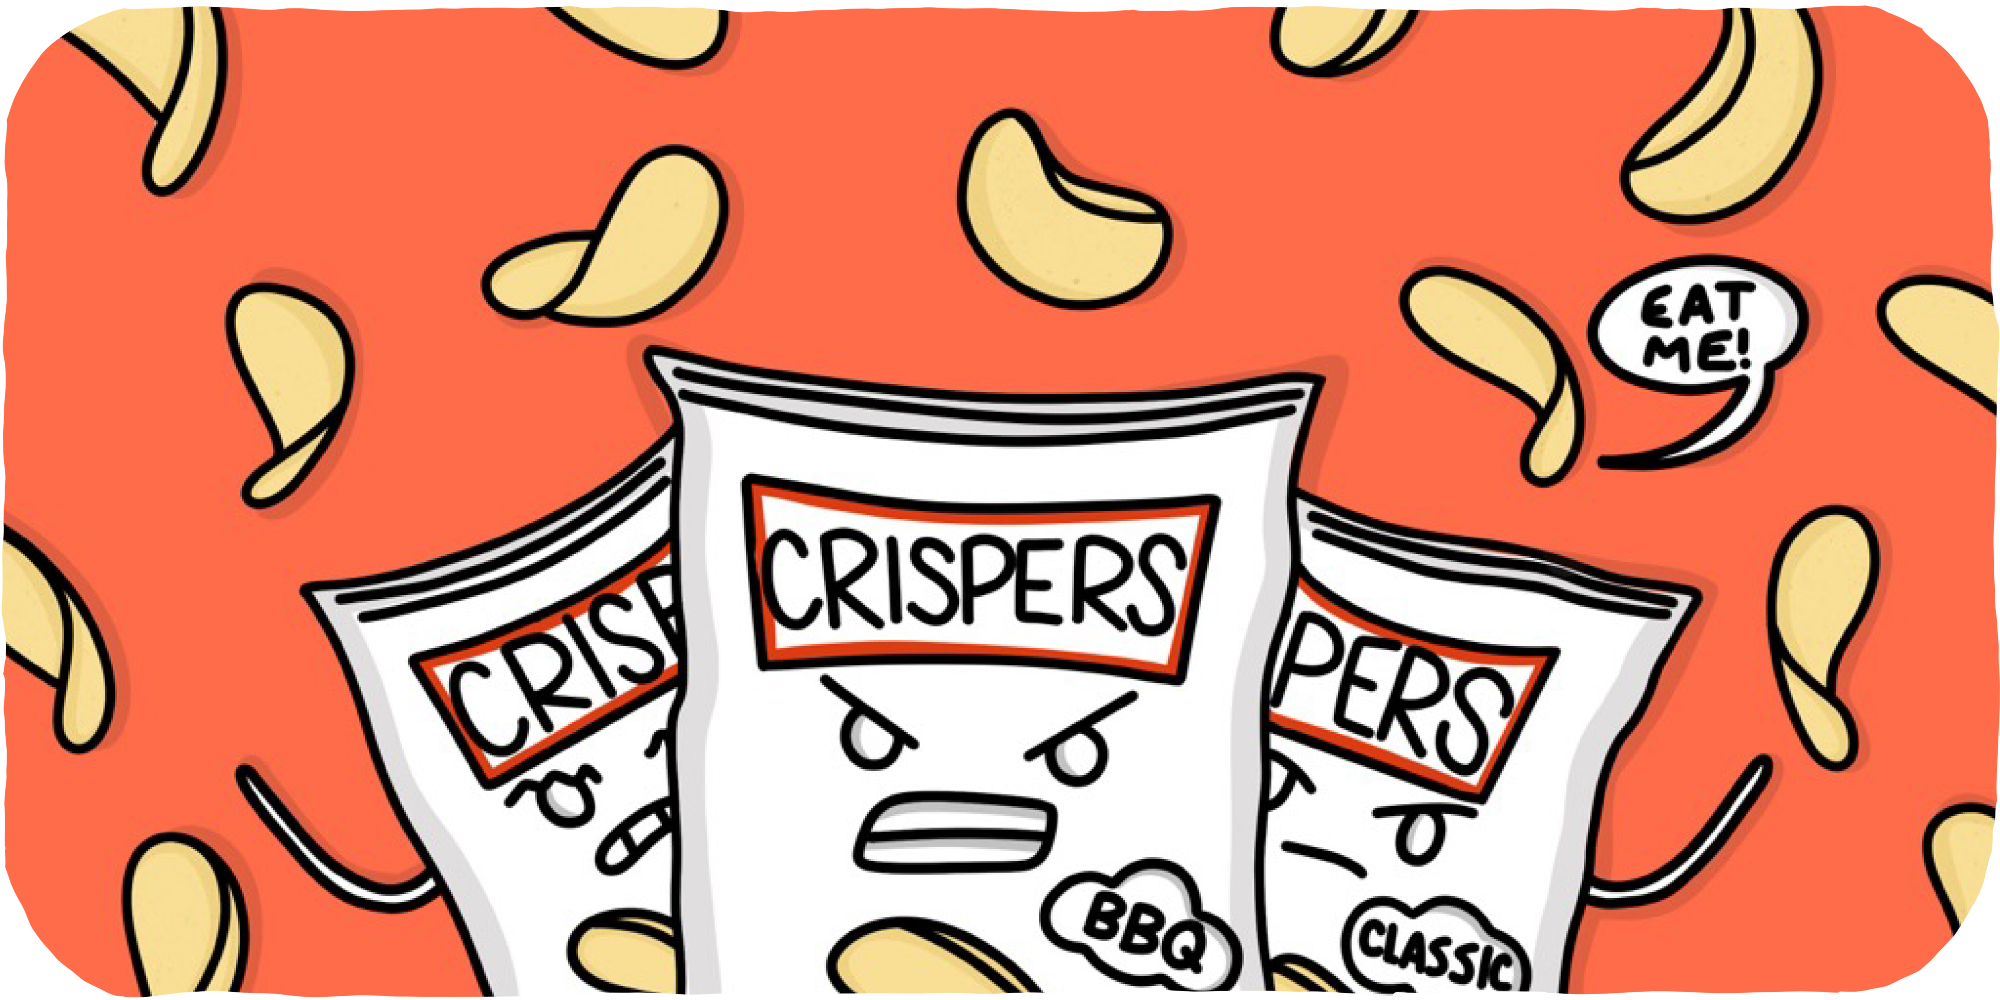 Bags of Crispers chips demand to be eaten